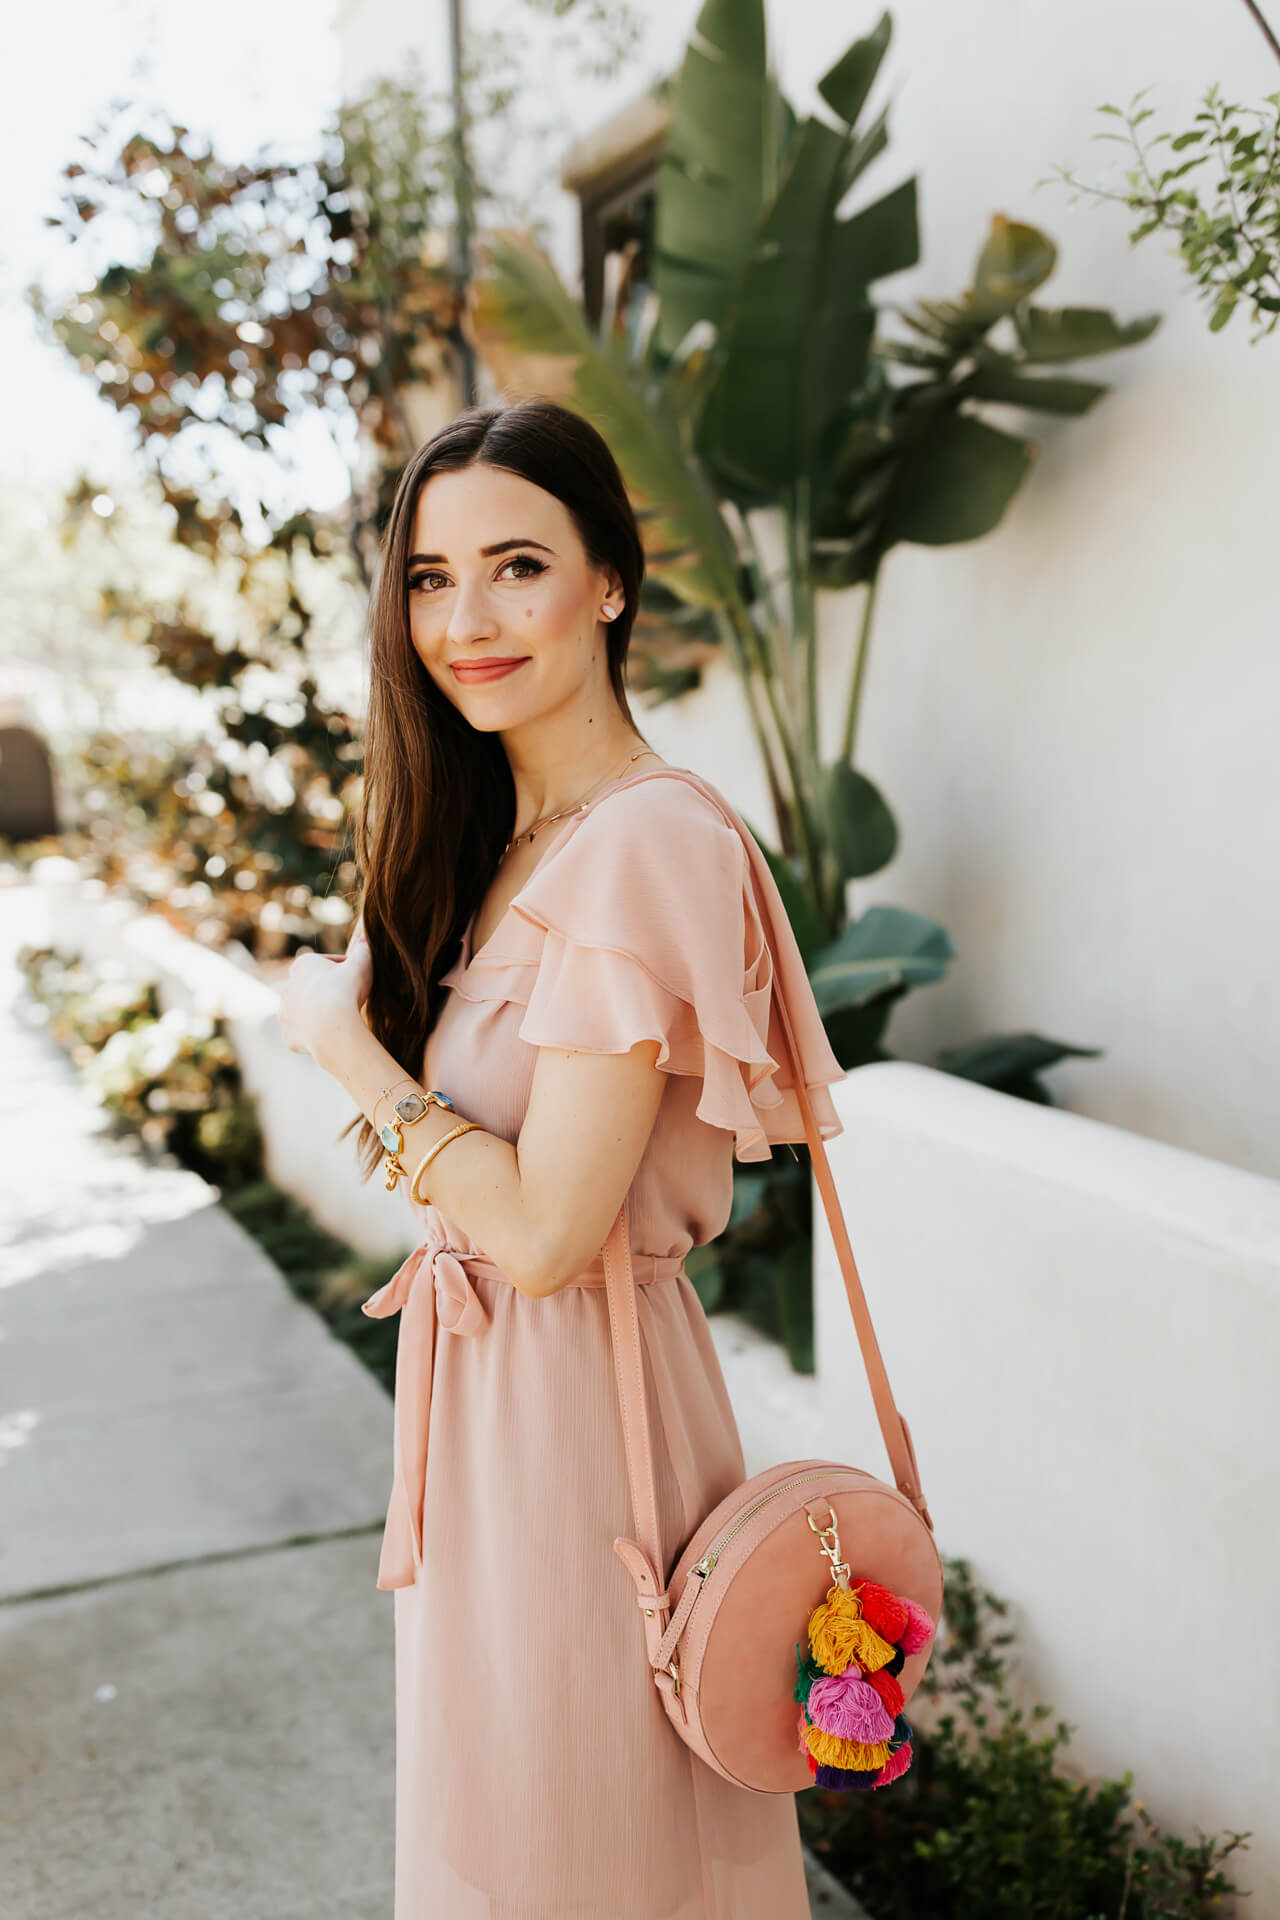 ruffled sleeves on pretty pink dress - feminine fashion blogger M Loves M @marmar